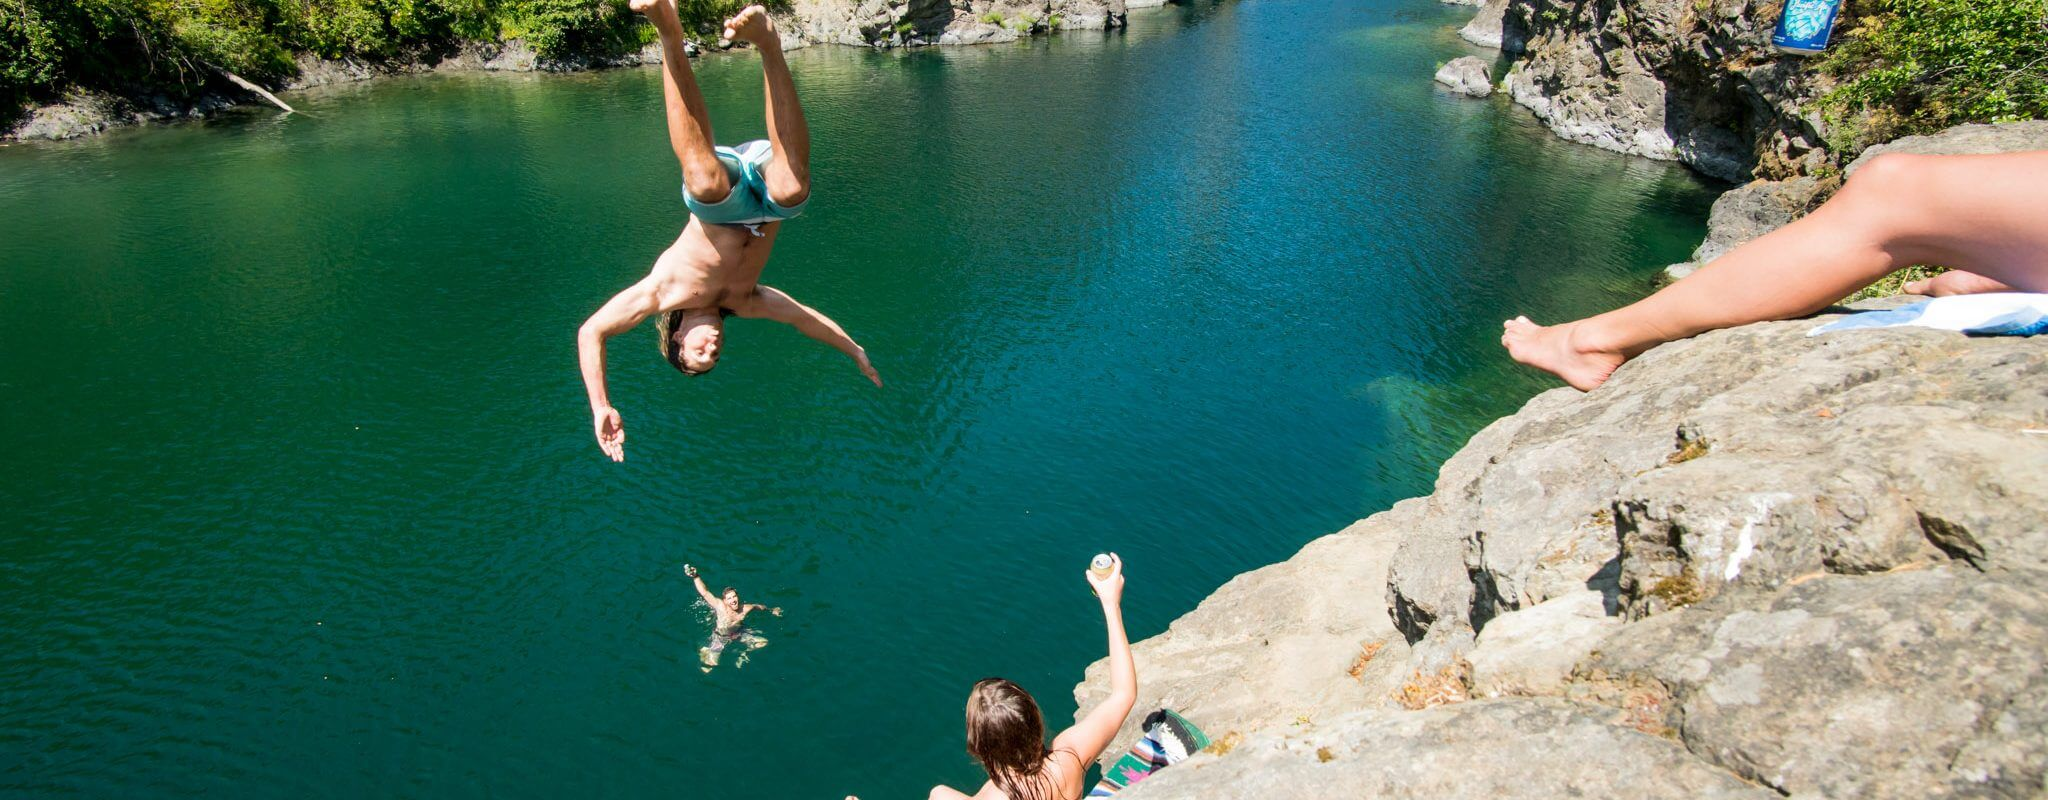 Jump into summer with Goodlife beer.